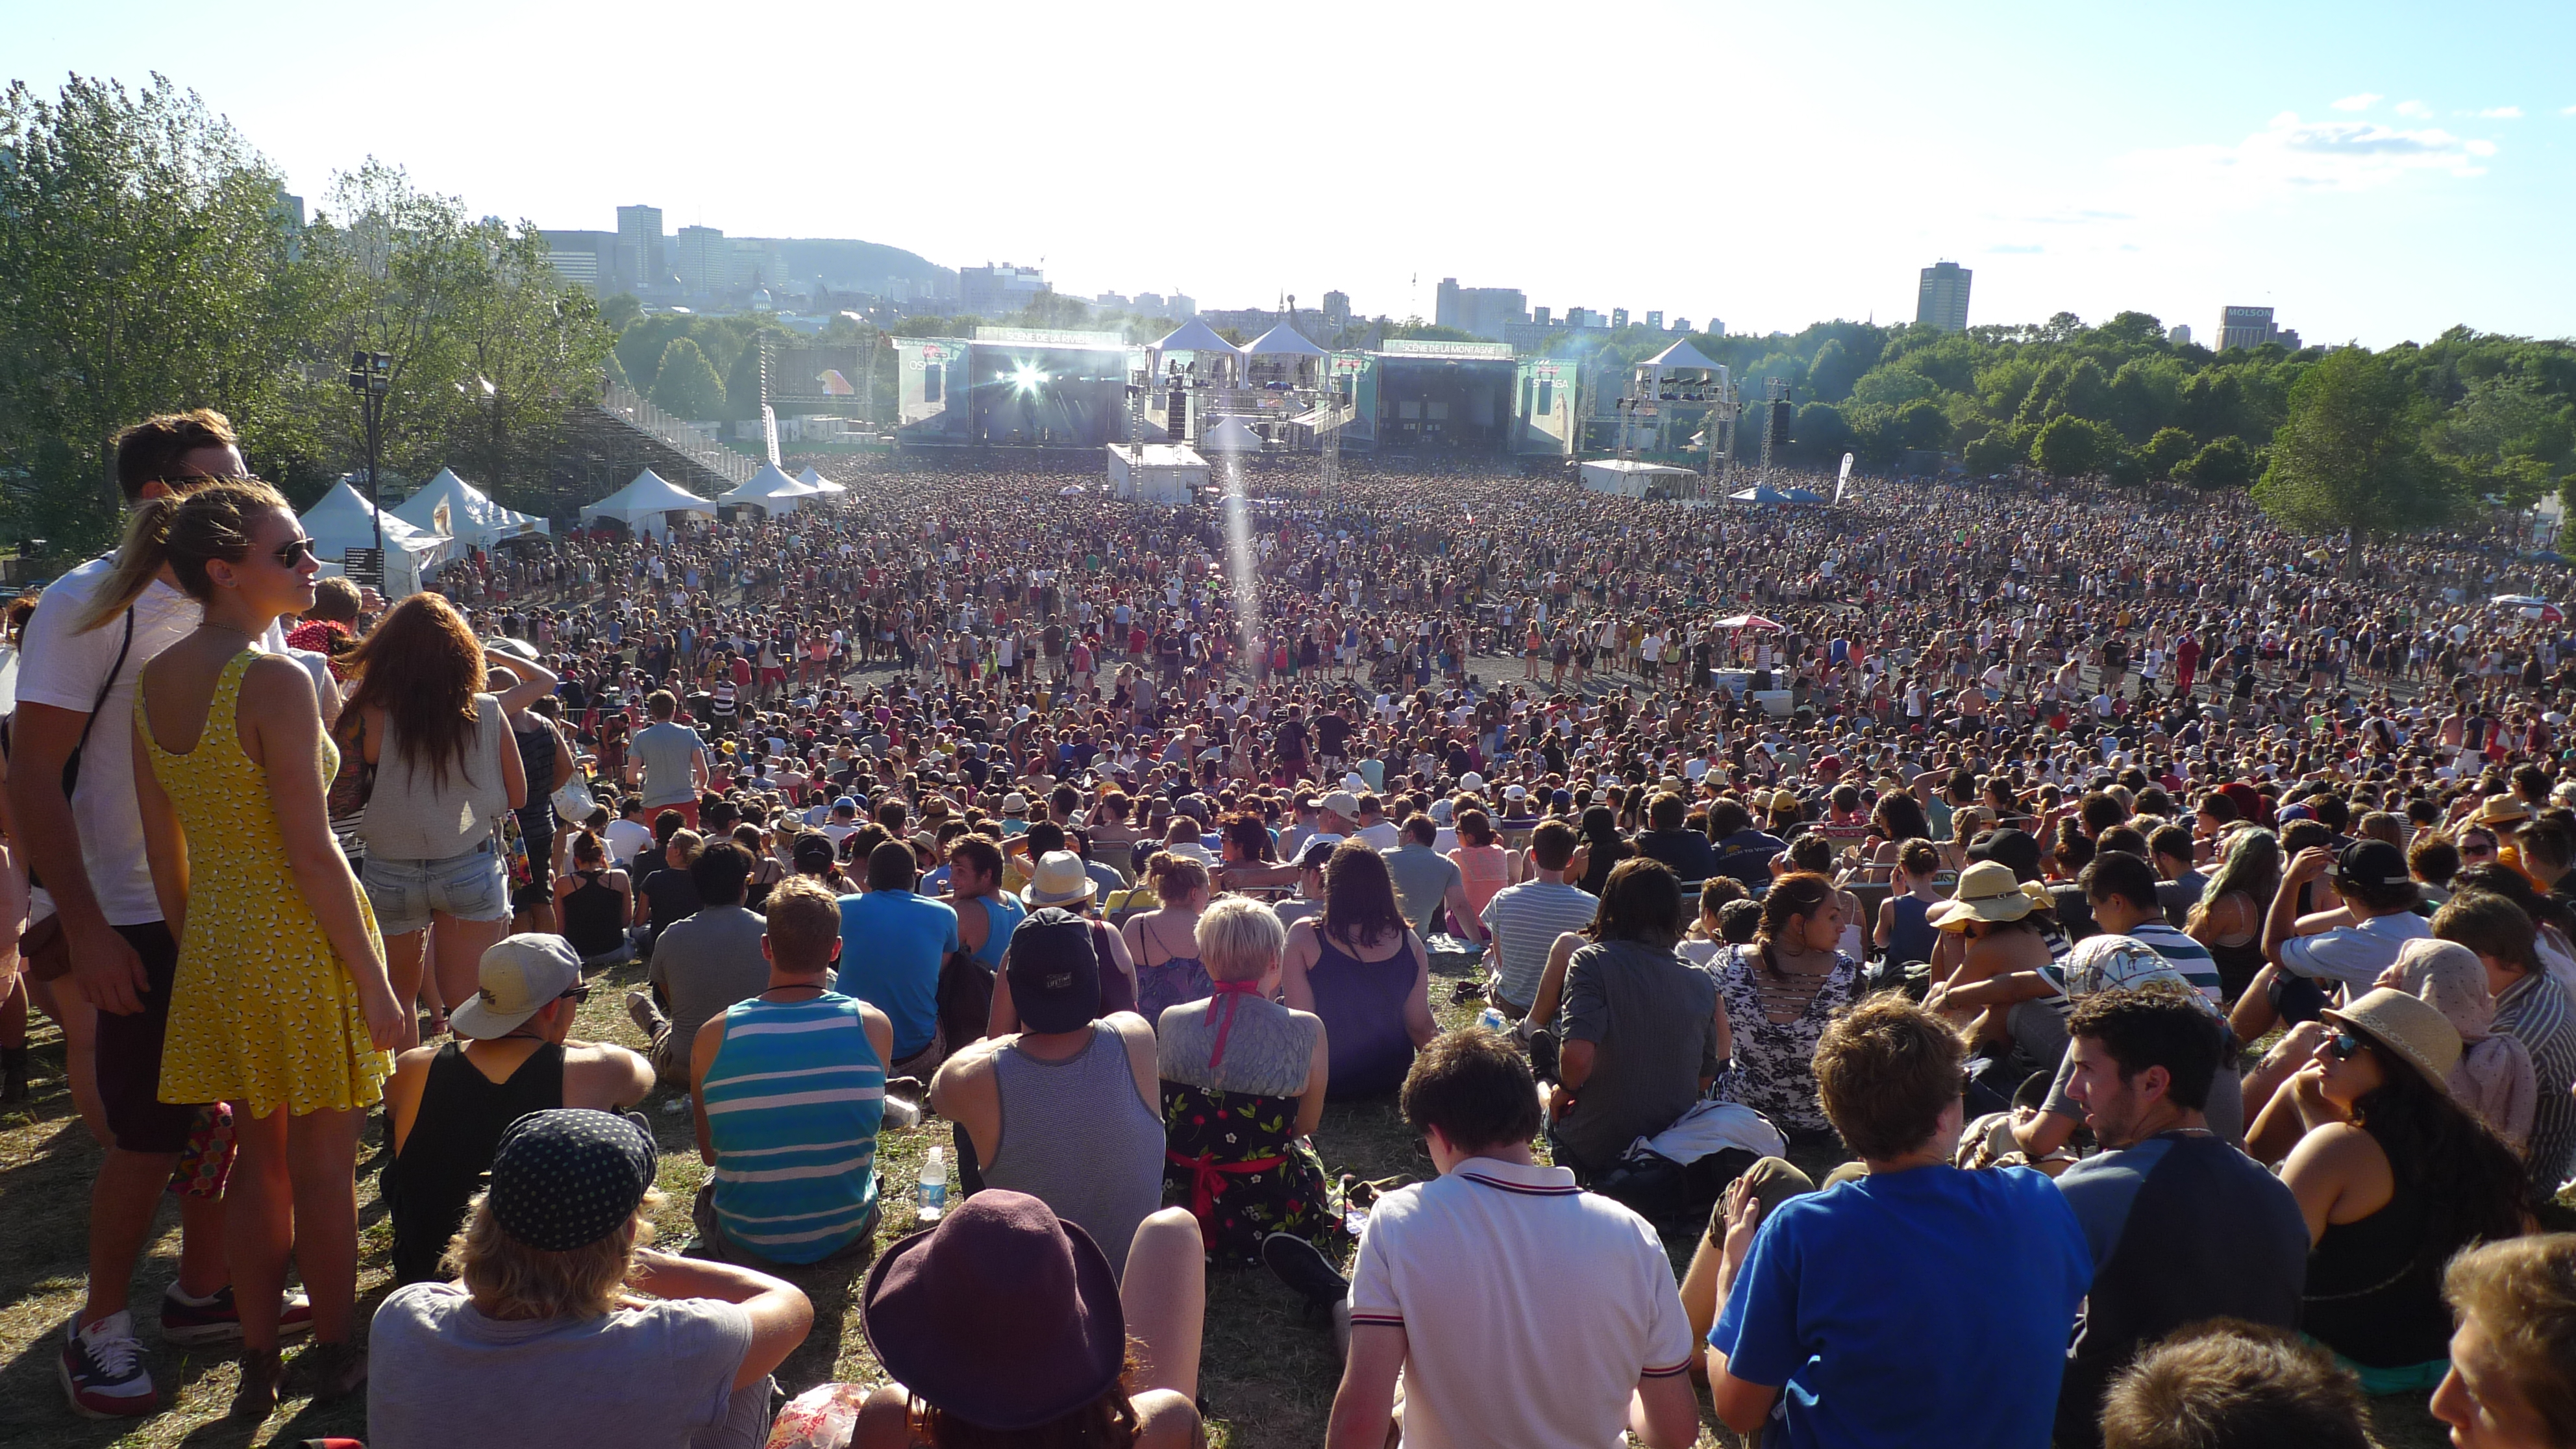 Osheaga music festival crowd